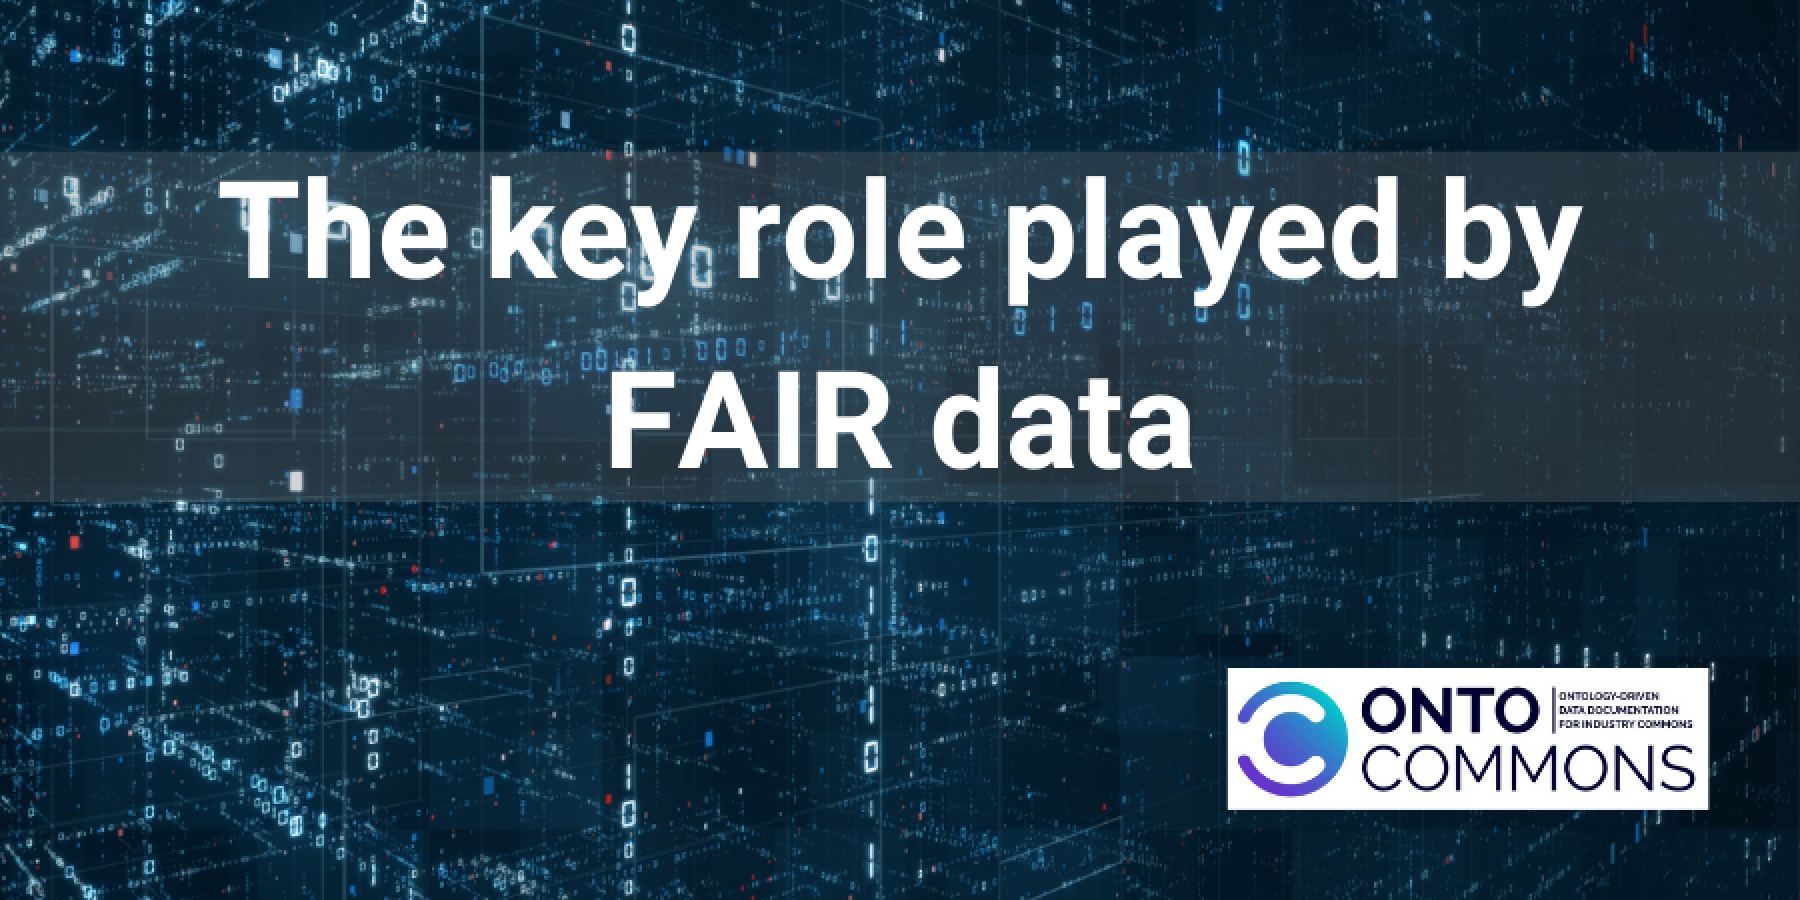 The key role played by FAIR data